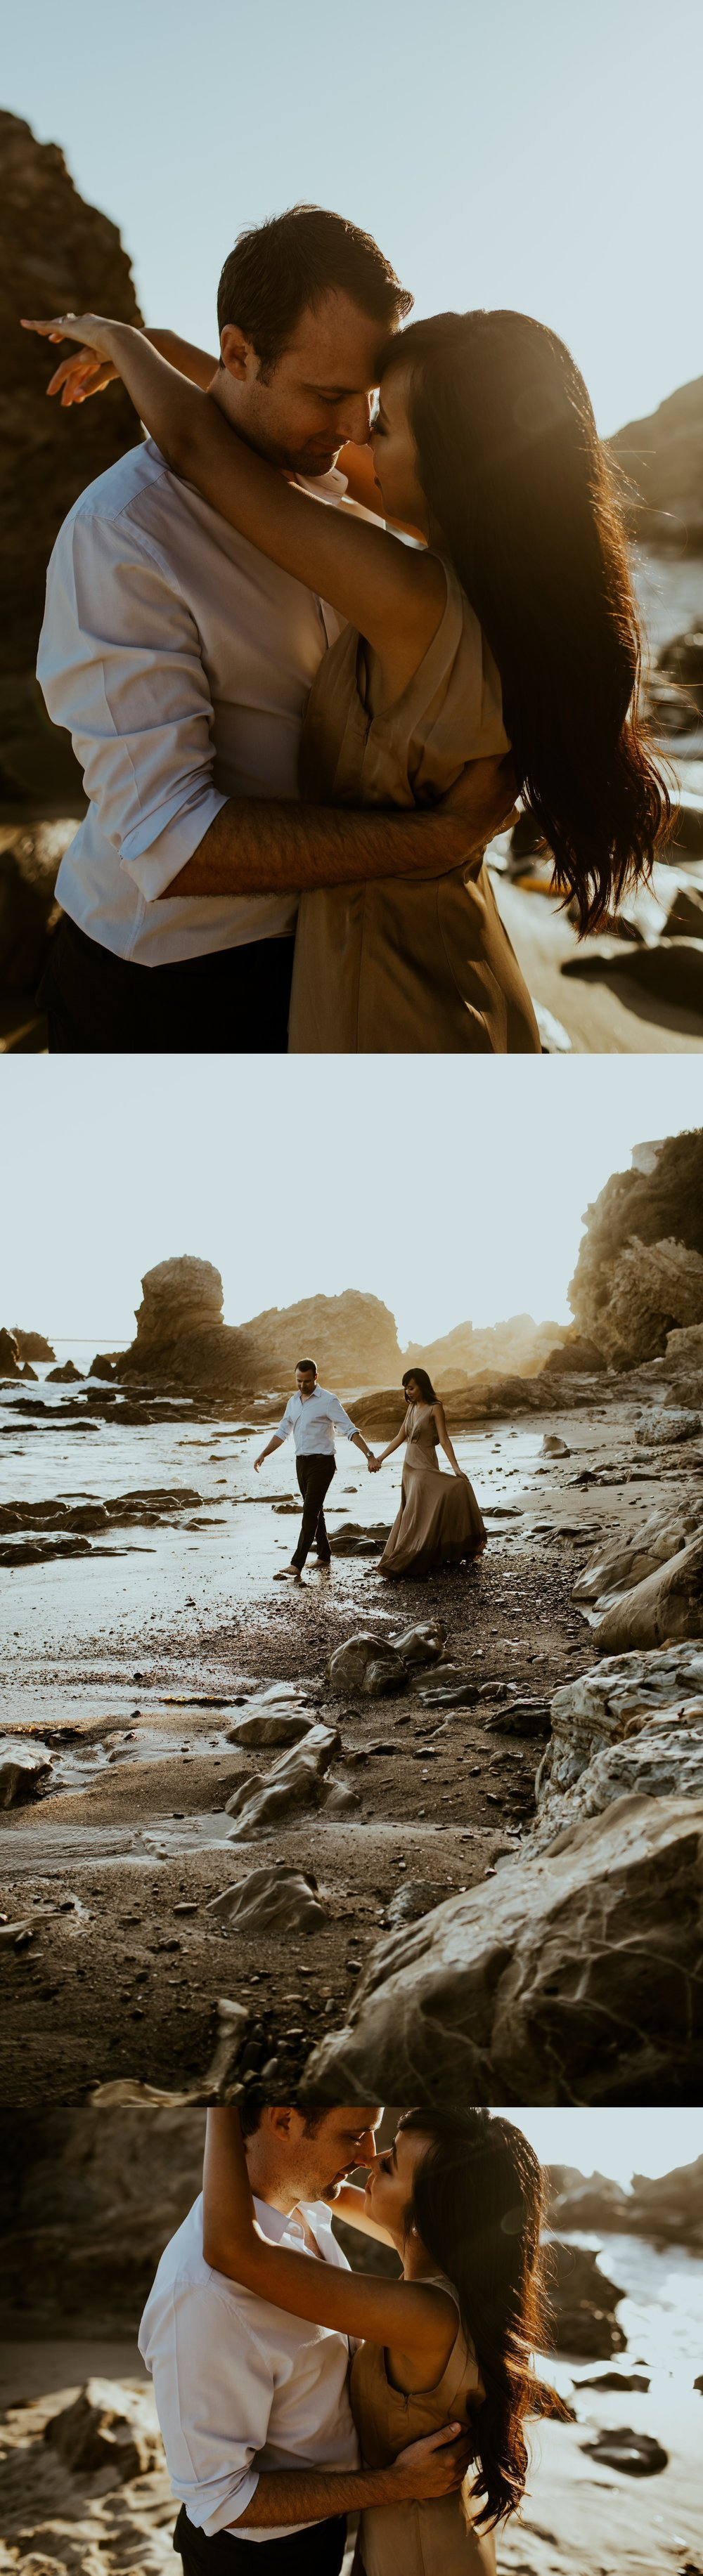 Little Corona State Beach Engagement Session - Stephanie and Zach - Trin Jensen Photography_0022.jpg